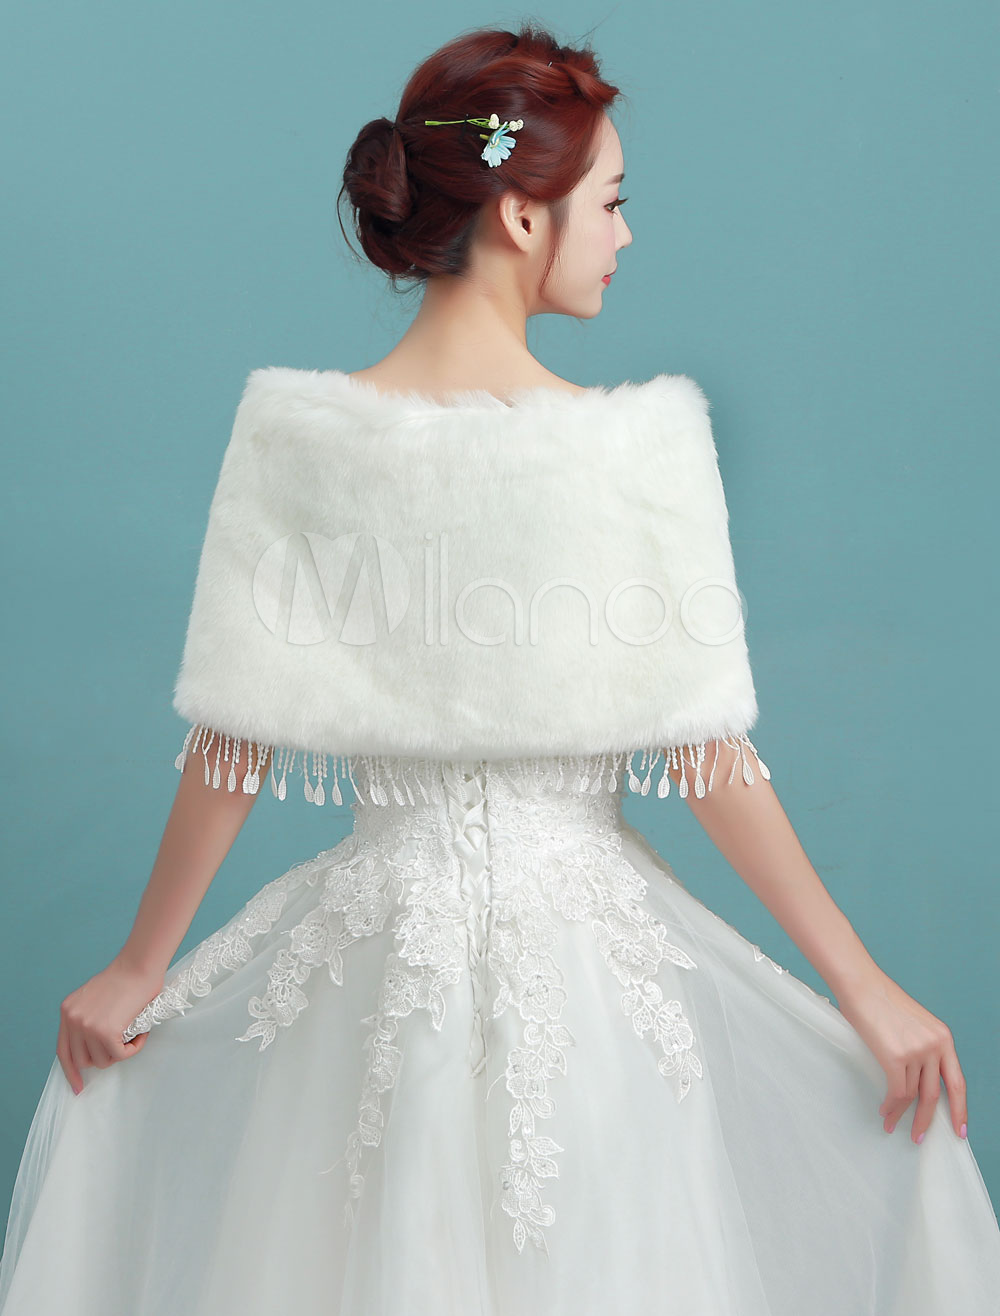 Fantastic Www.milanoo.com Wedding Dresses Frieze - All Wedding ...